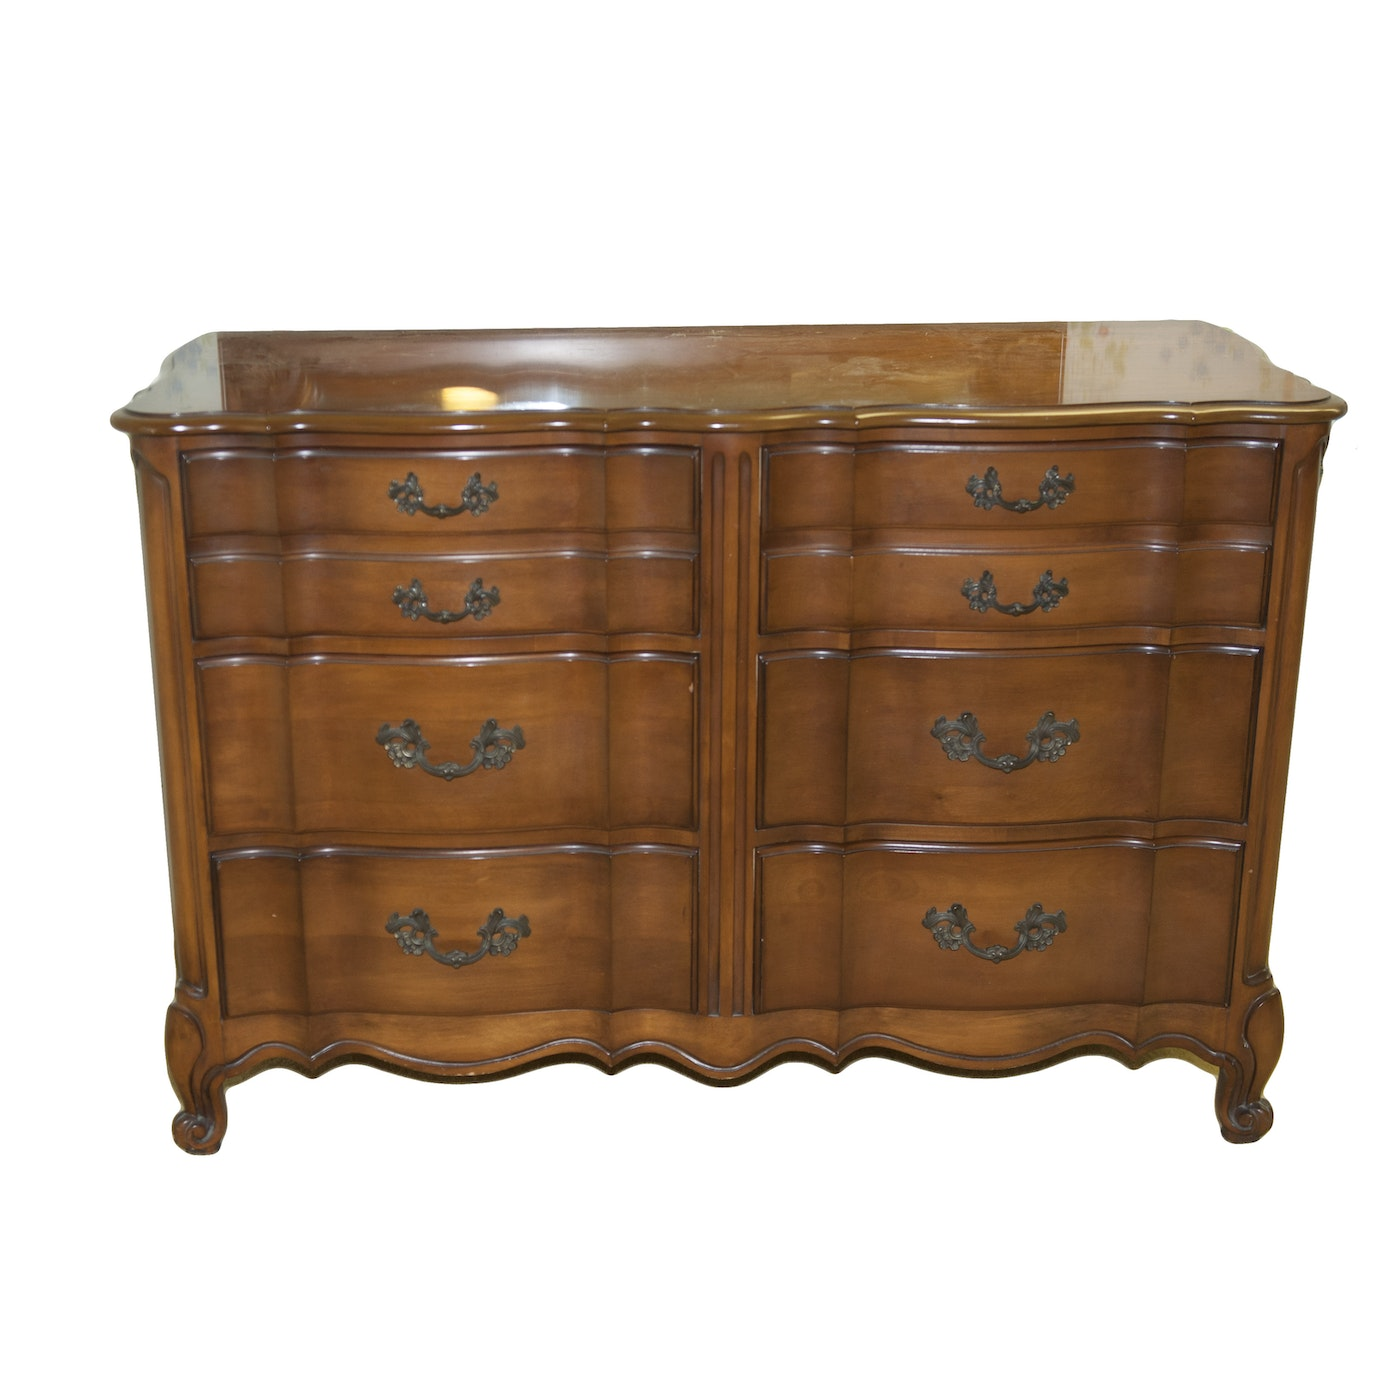 White Furniture Company French Provincial Style Chest Of